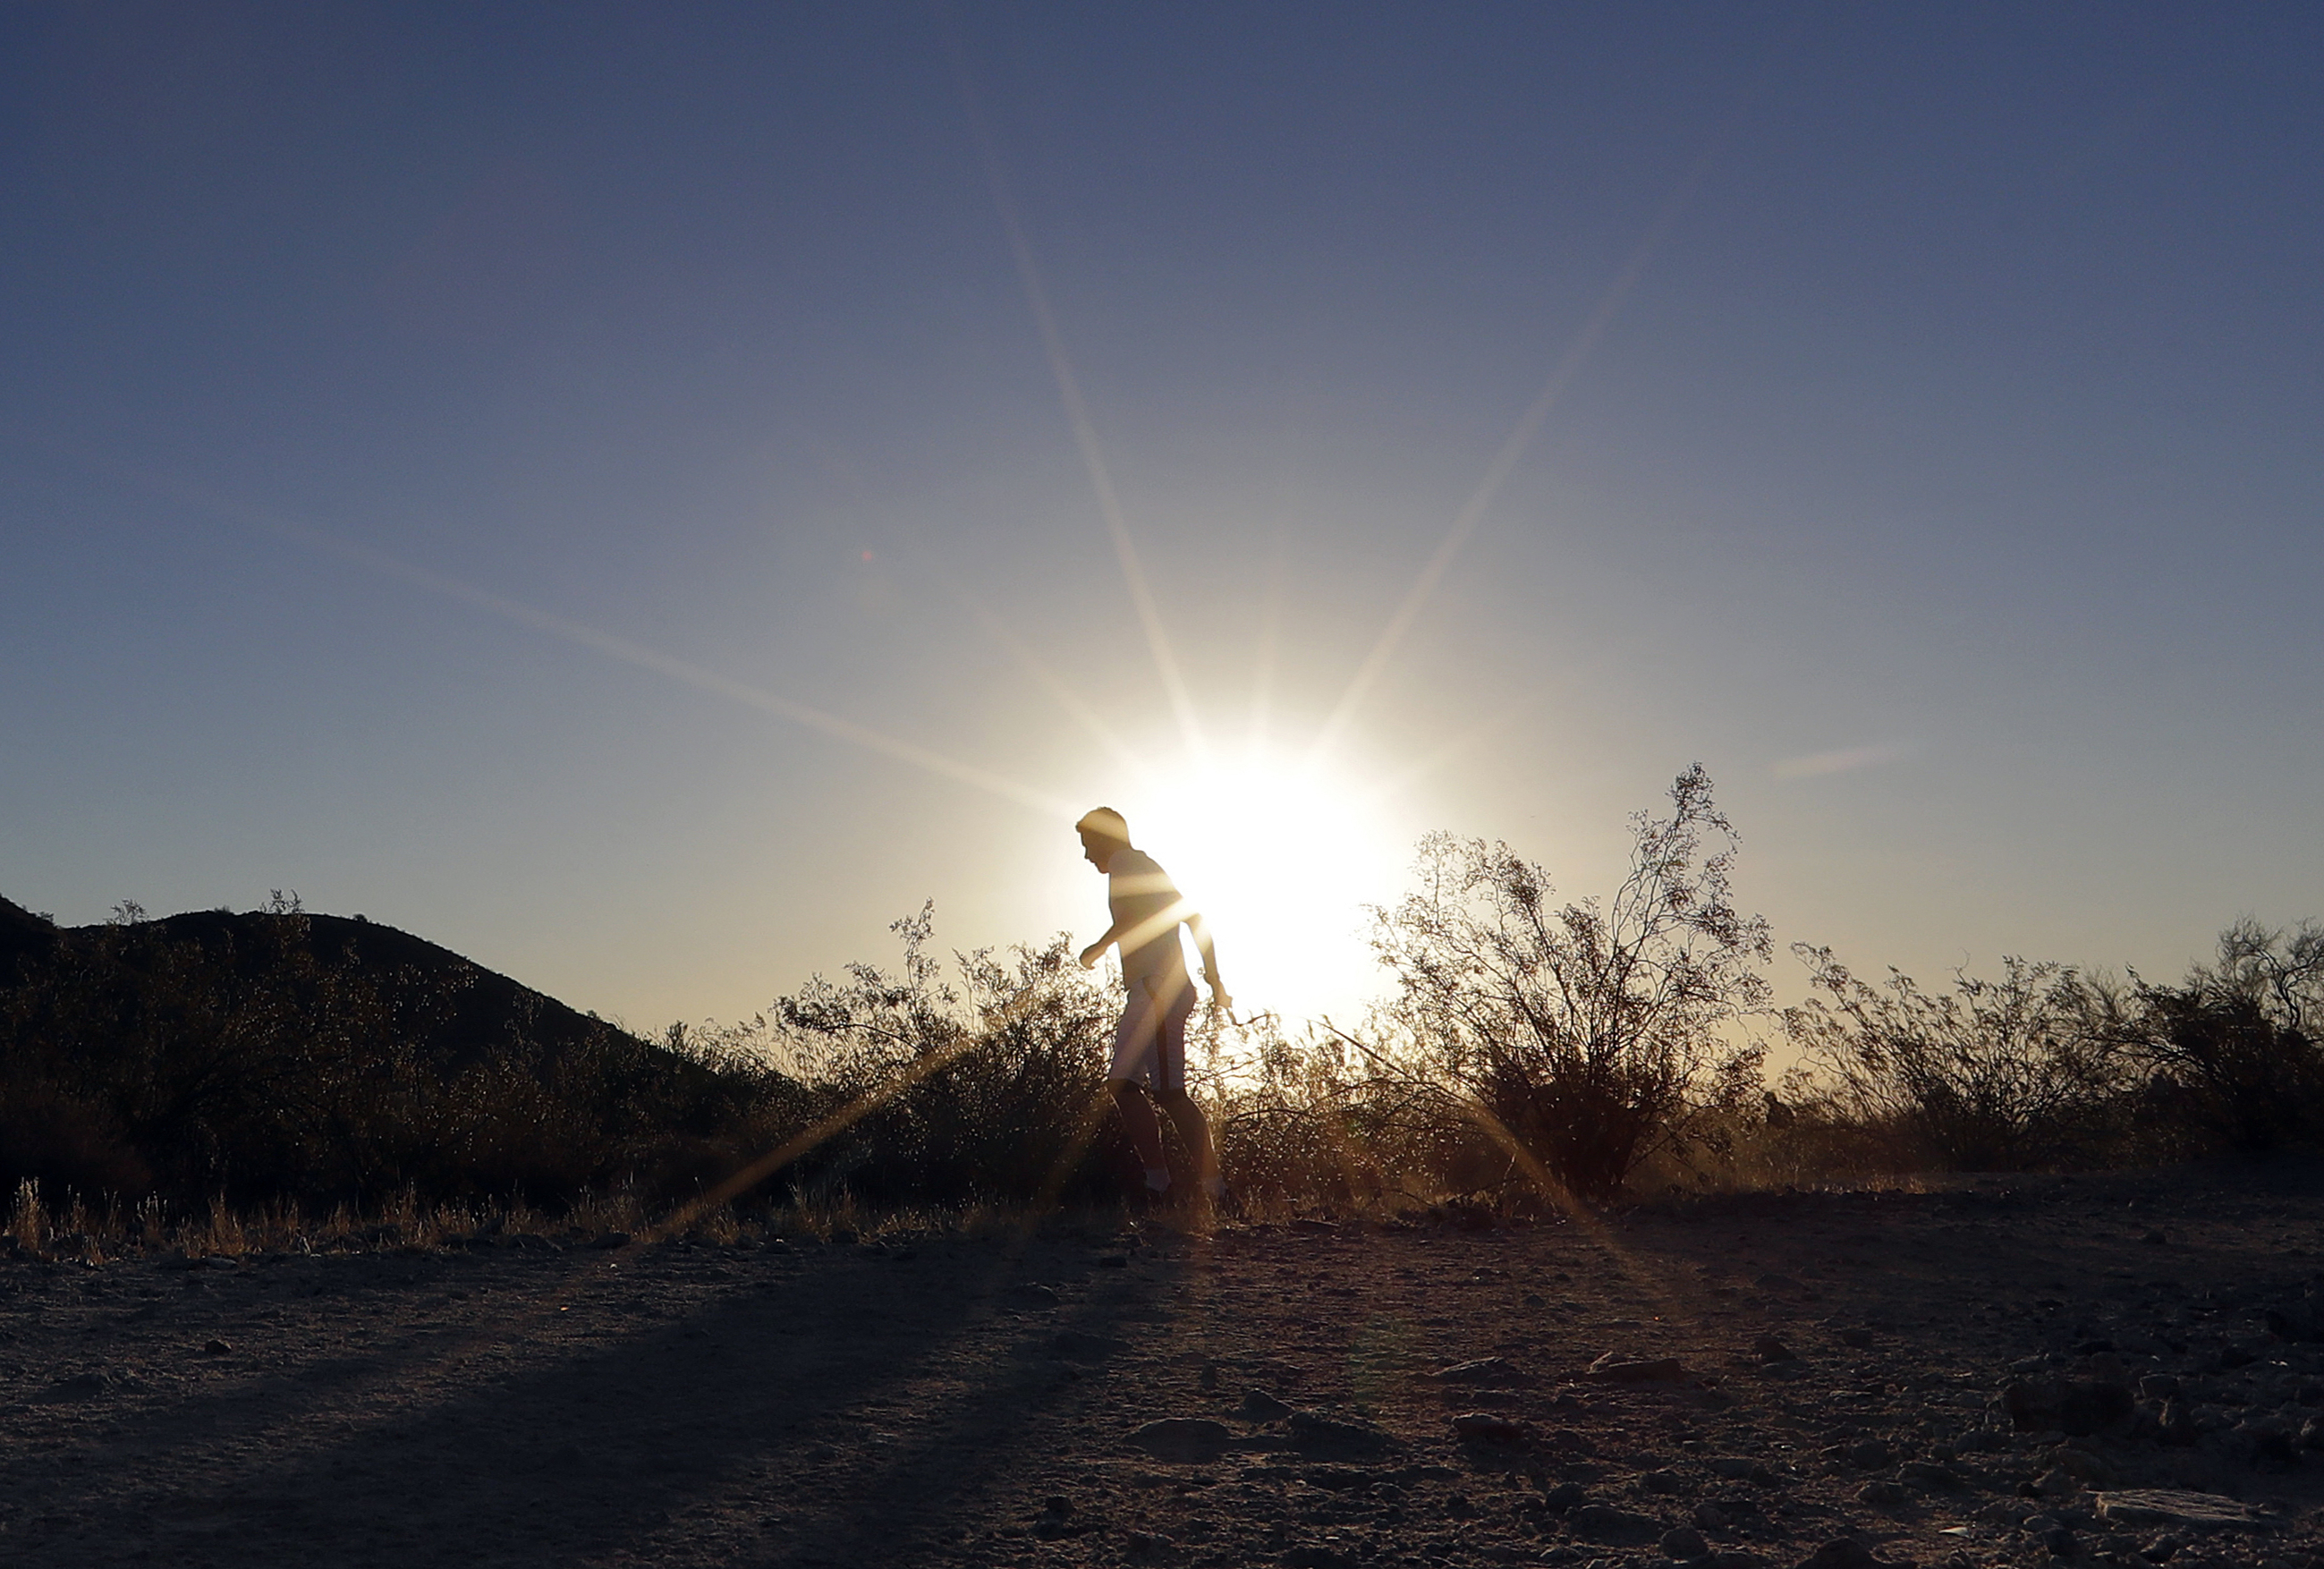 FILE - In this June 16, 2017, file photo, a man runs through section of South Mountain Park at sunrise to avoid the excessive heat in Phoenix. A record heat wave is rolling into Arizona, Nevada and California, threatening to bring 120-degree temperatures to Phoenix by early next week. The southwestern U.S. is about to feel the wrath of a punishing heat wave that includes a forecast of 120 degrees in Phoenix _ a temperature not seen in the desert city in more than 20 years. (AP Photo/Matt York, File)